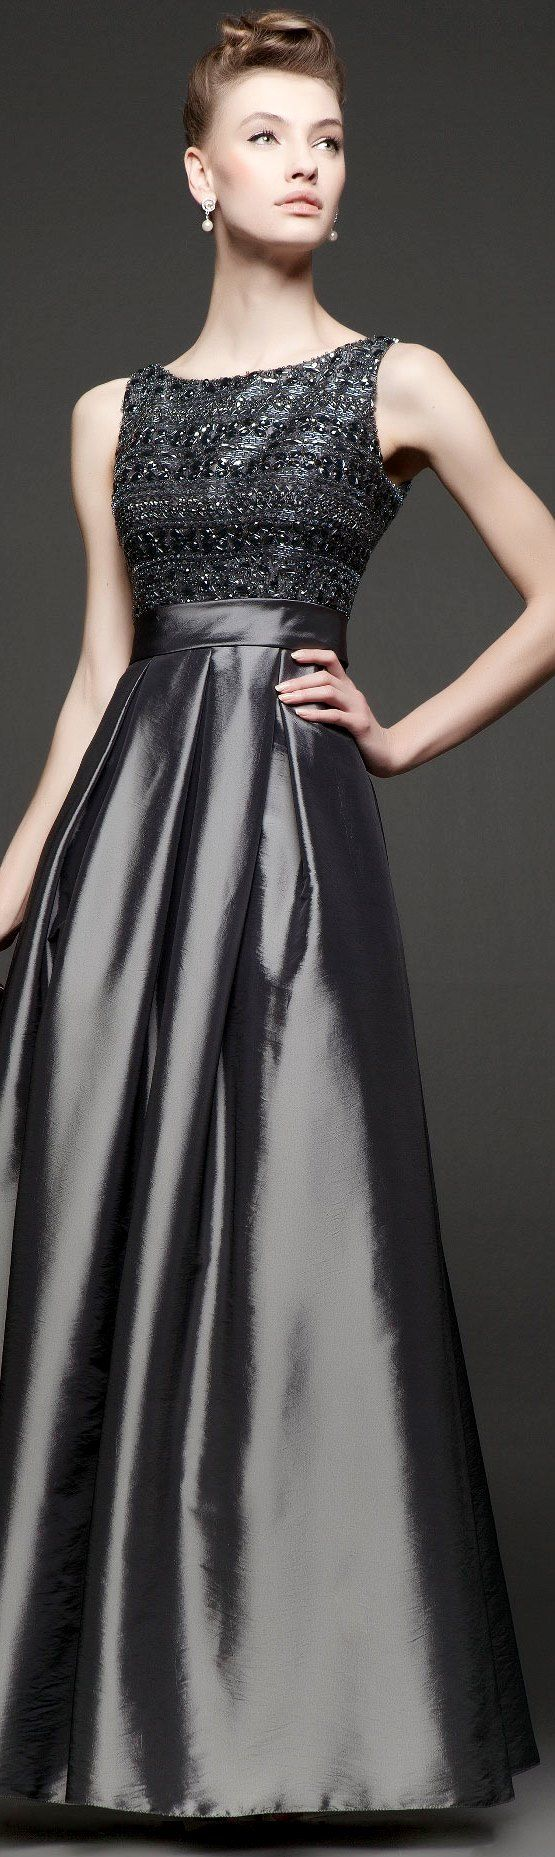 dynamic dress for a special black tie event so sorry no source